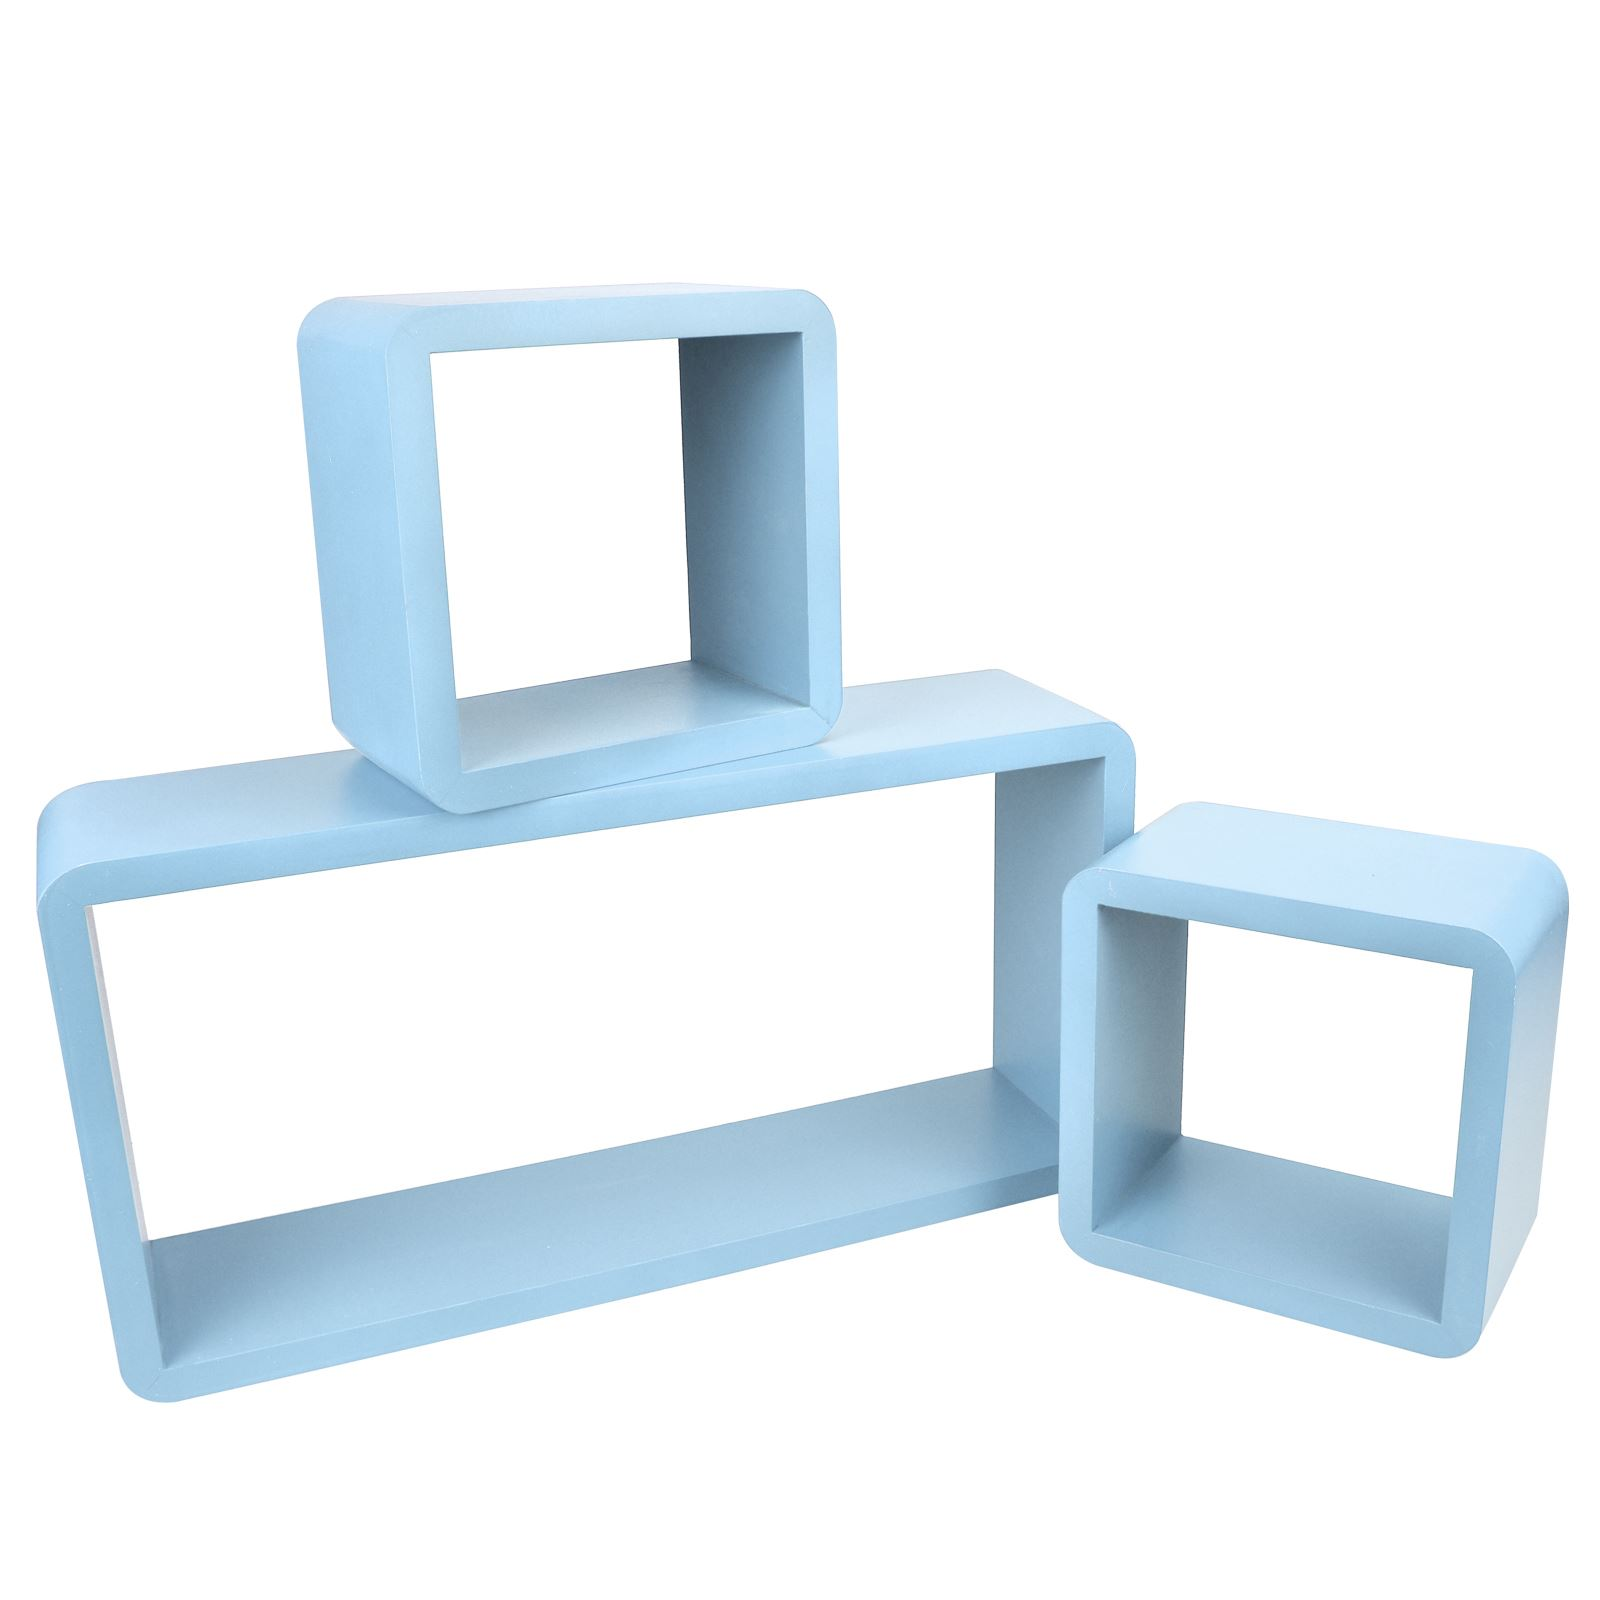 3pc-Set-Rectangle-Floating-Shelves-Wall-Mount-Storage-Book-Shelf-DVD-CD-Stand thumbnail 12